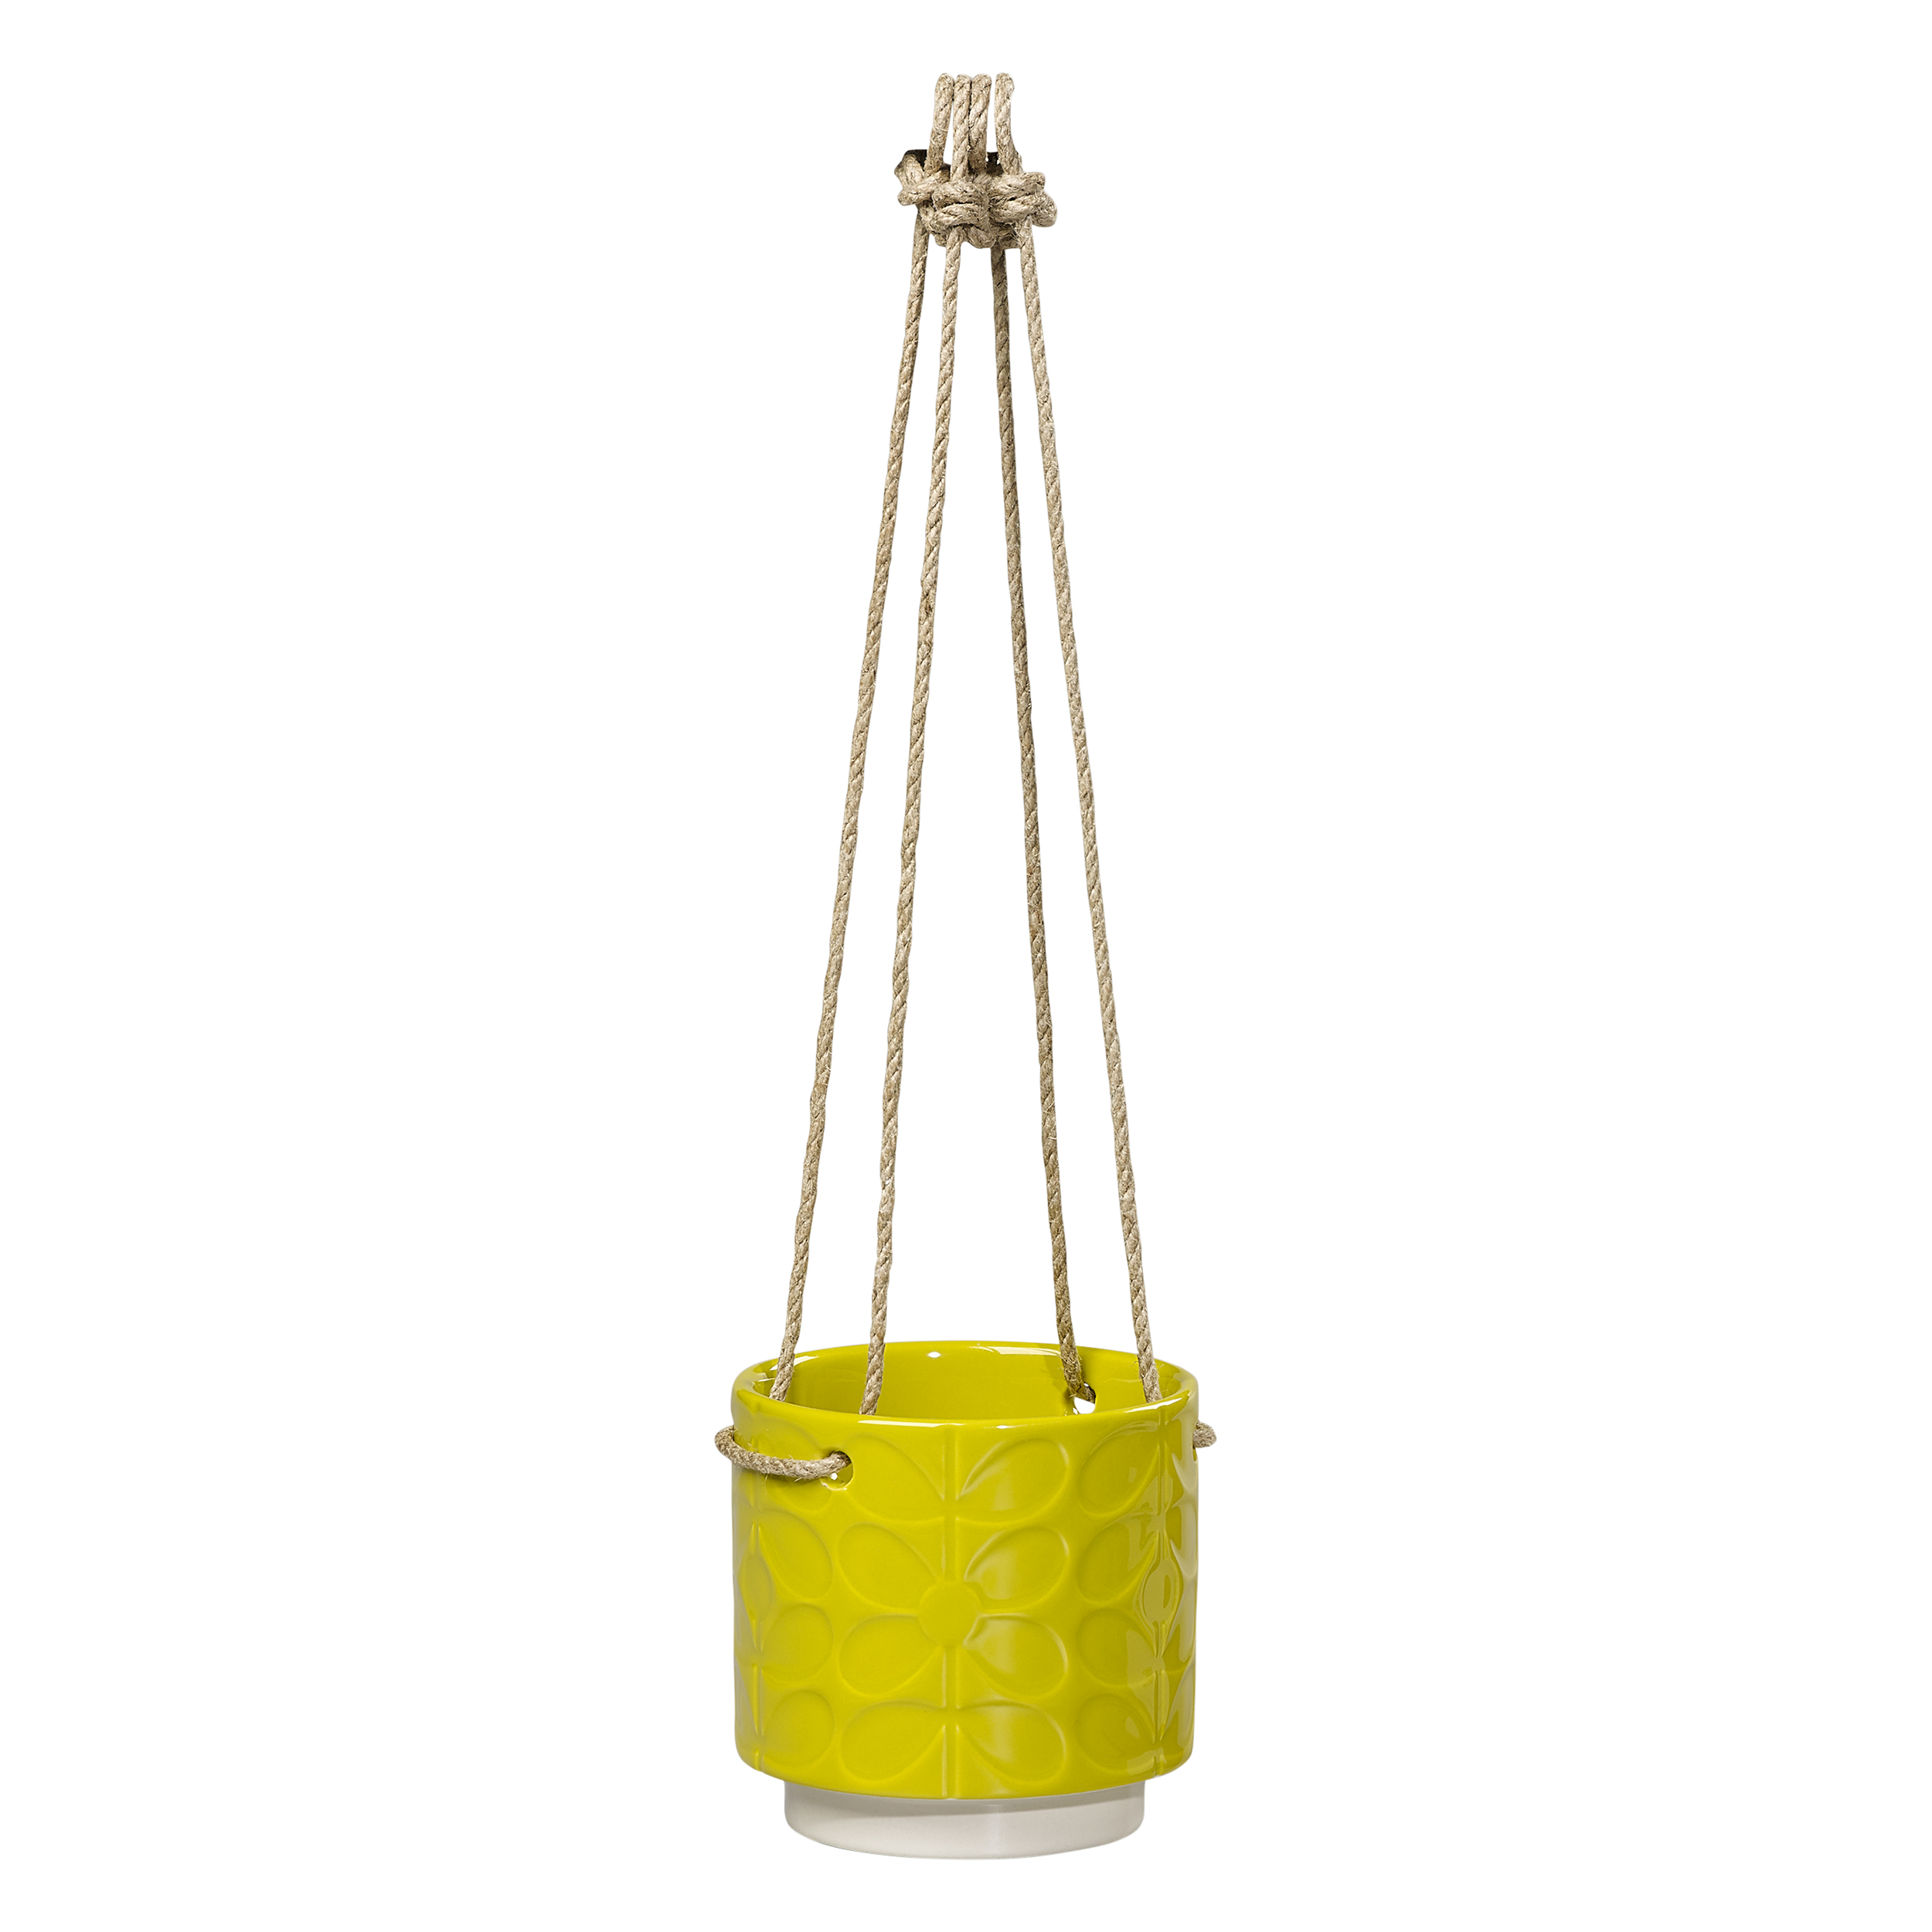 Orla Kiely 60s stem ceramic hanging plant pot